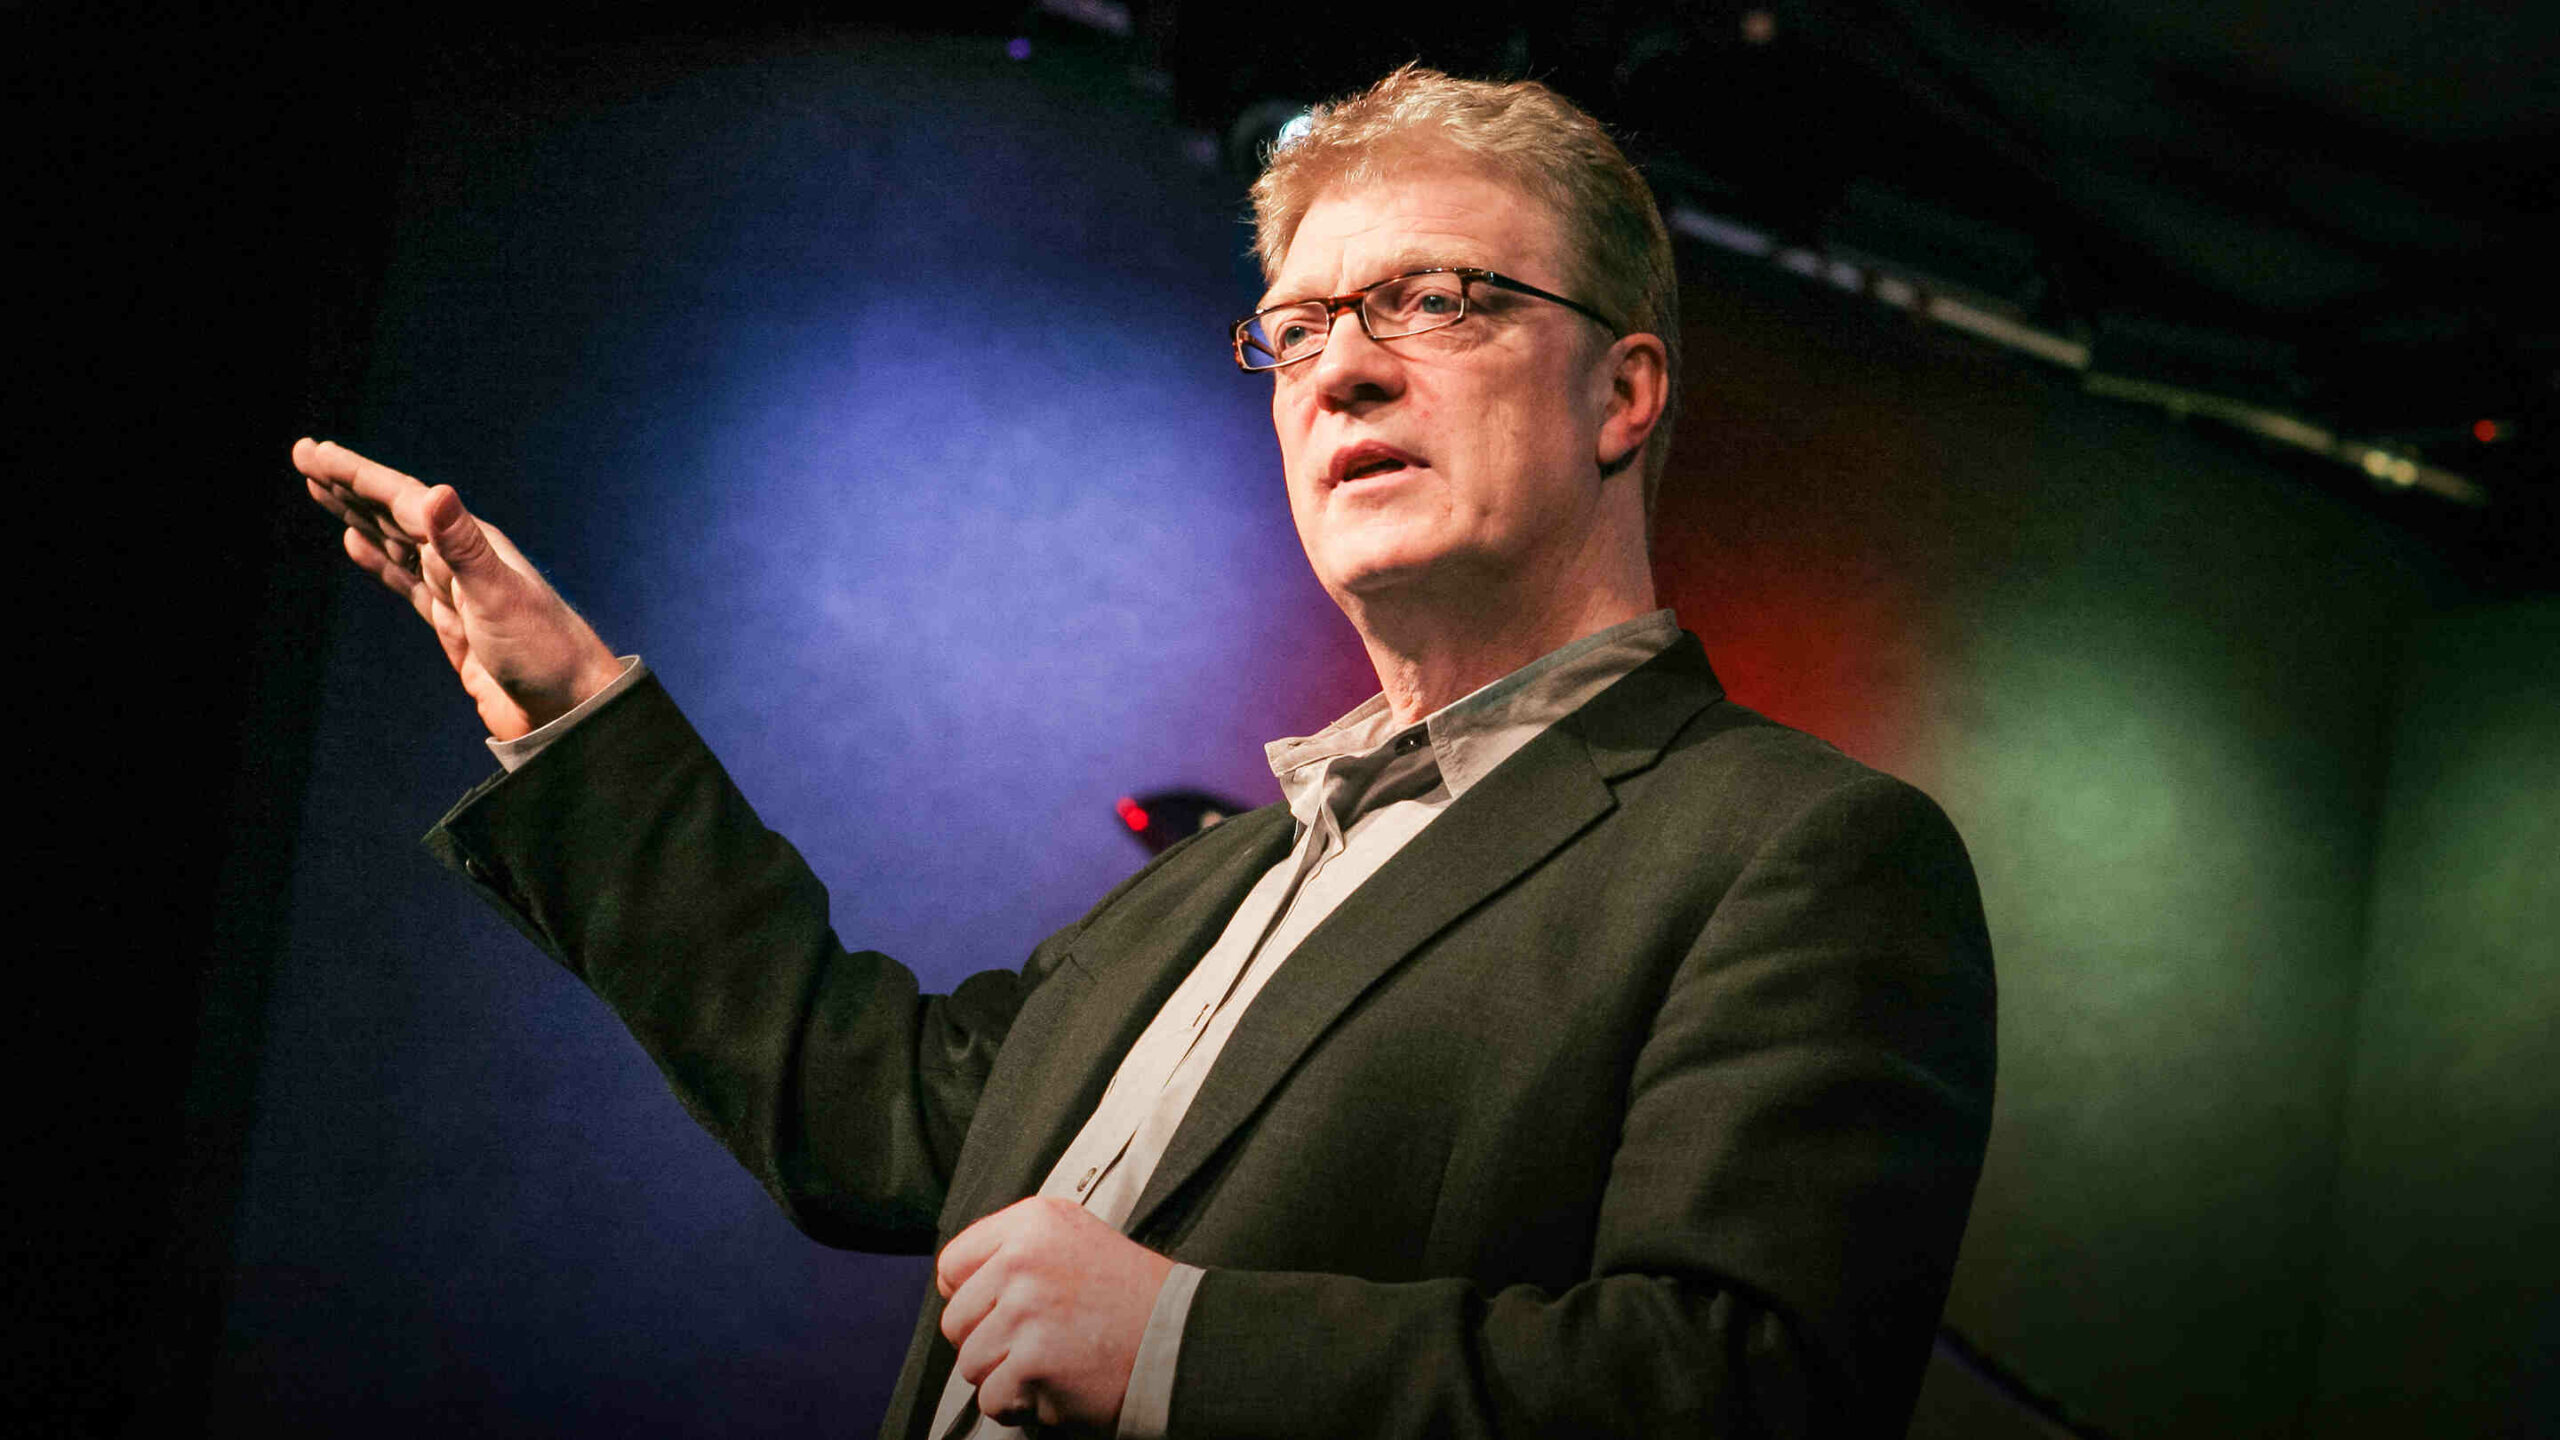 How much does a TED talk ticket cost?